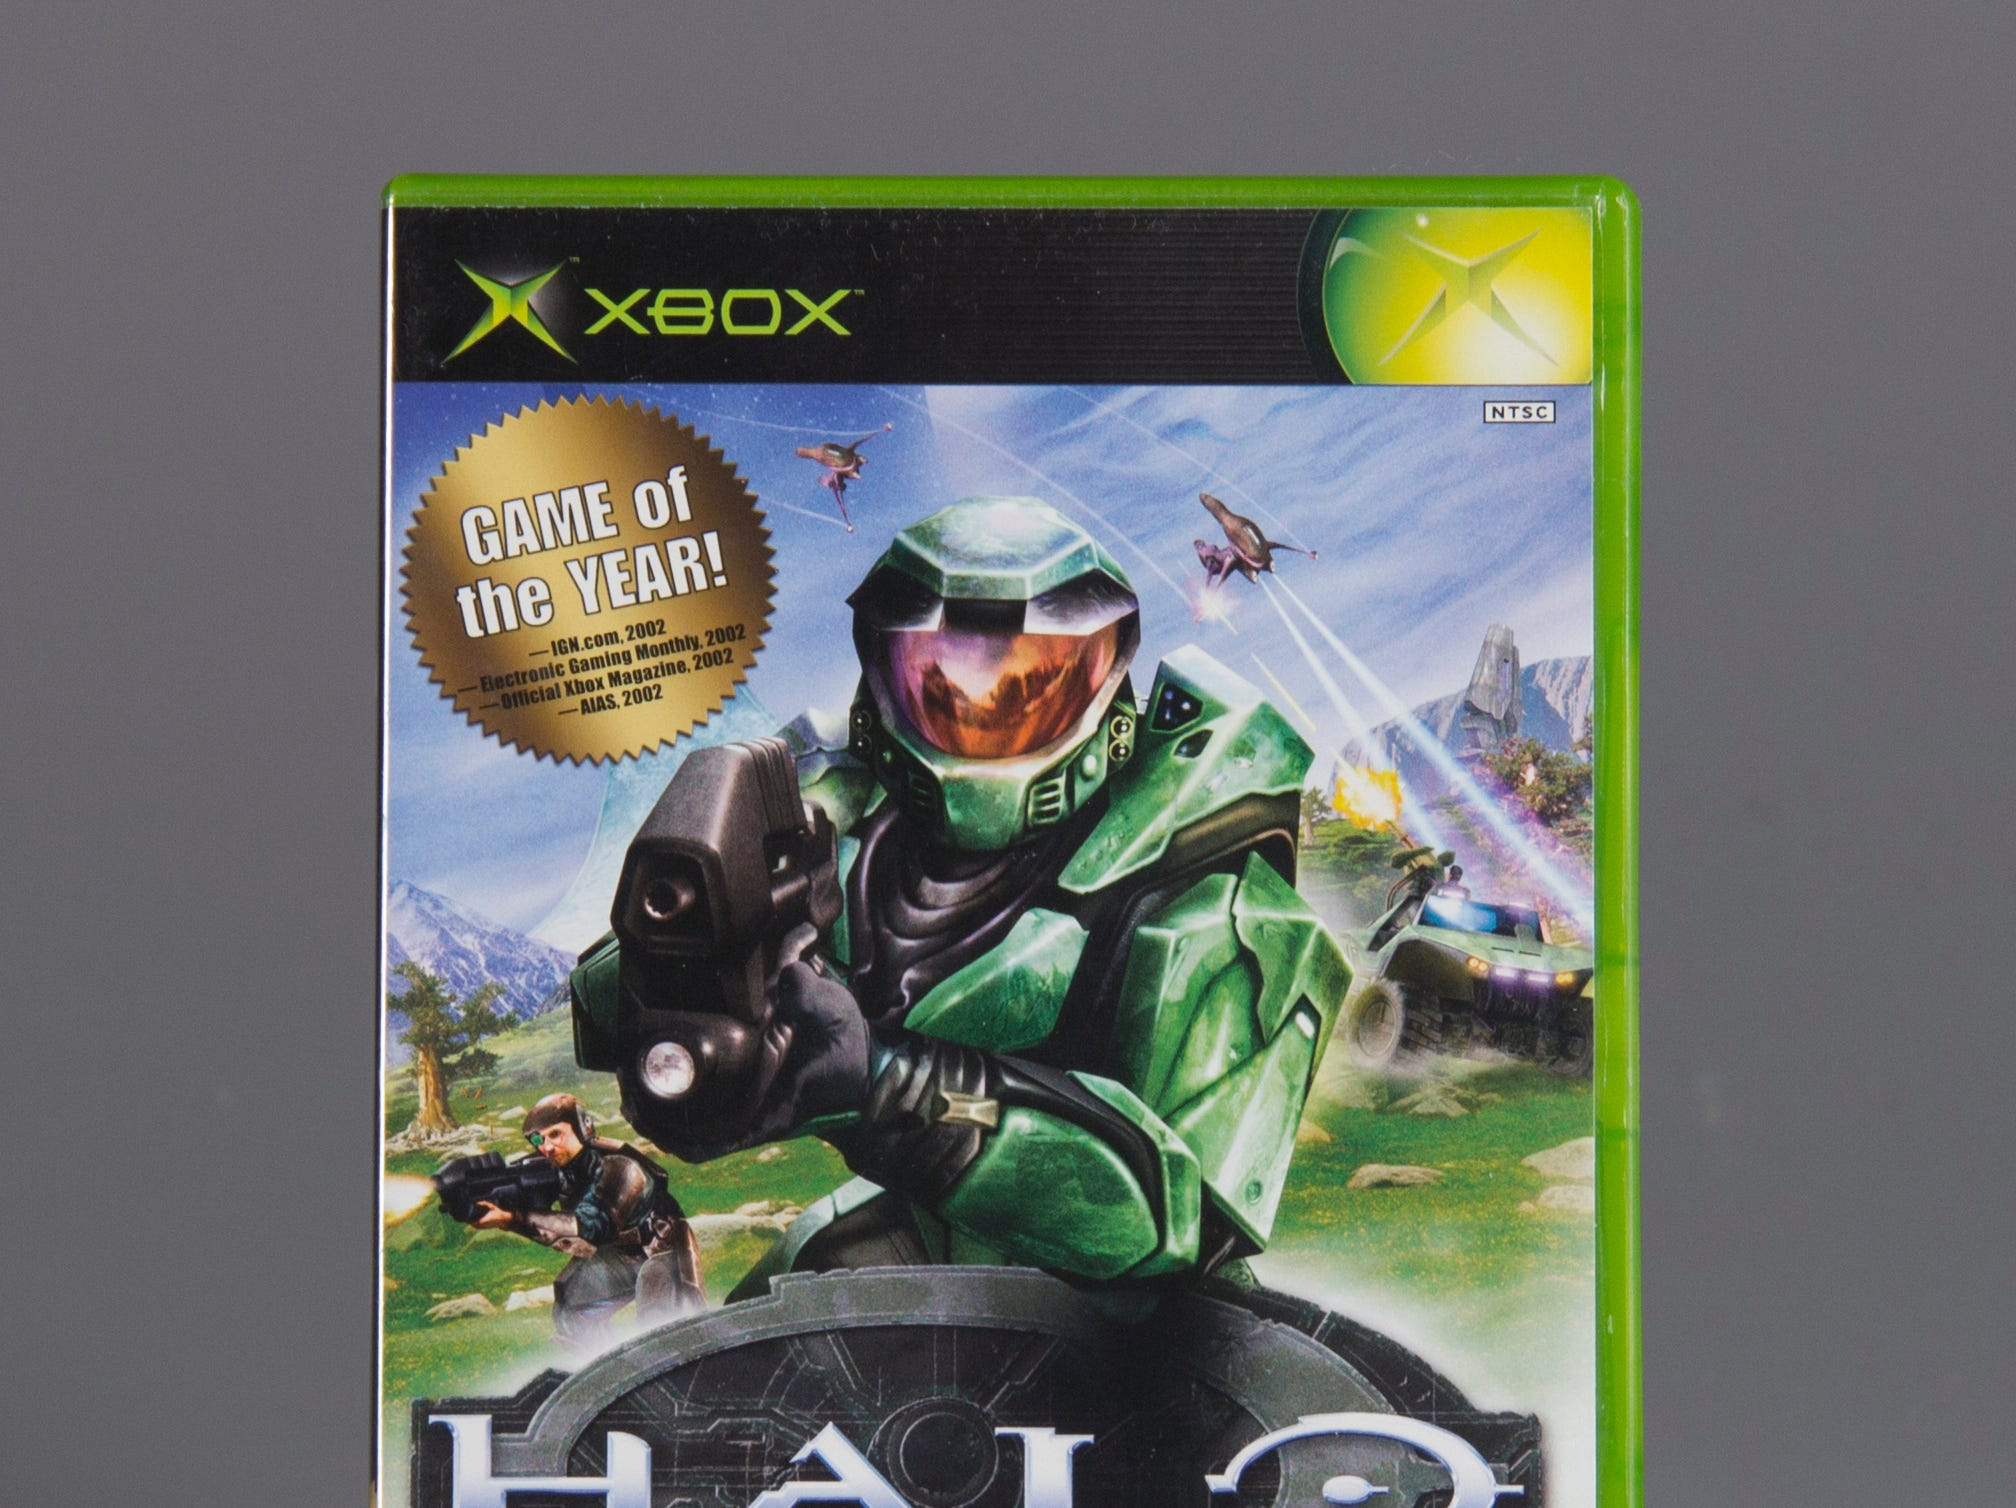 Halo: Combat Evolved was inducted into the World Video Game Hall of Fame at The Strong National Museum of Play in Rochester, New York in 2017.